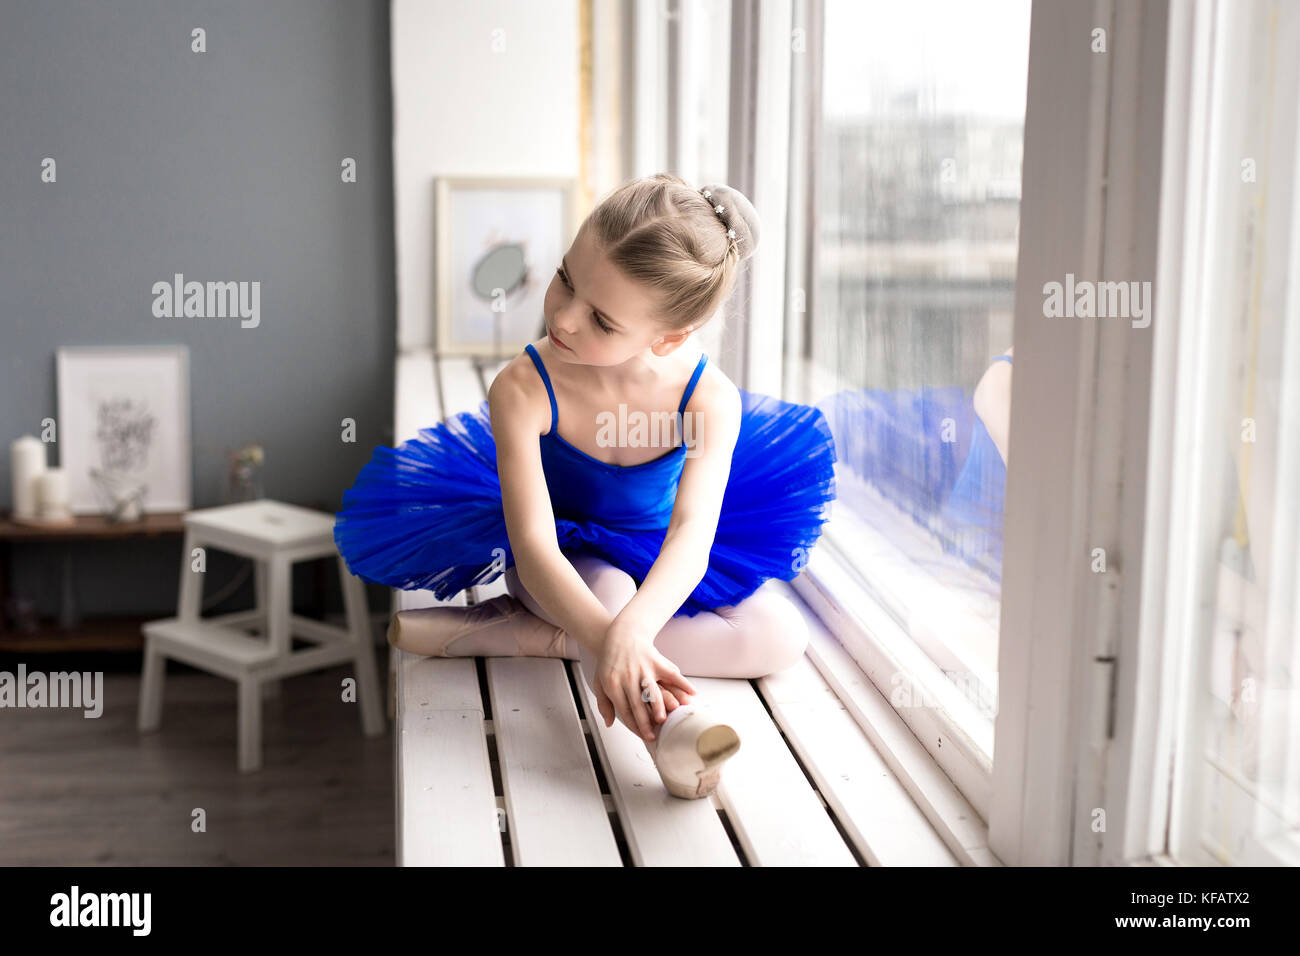 little girl dreams of becoming a ballerina. Child girl in a blue ballet costume dancing in a room. - Stock Image